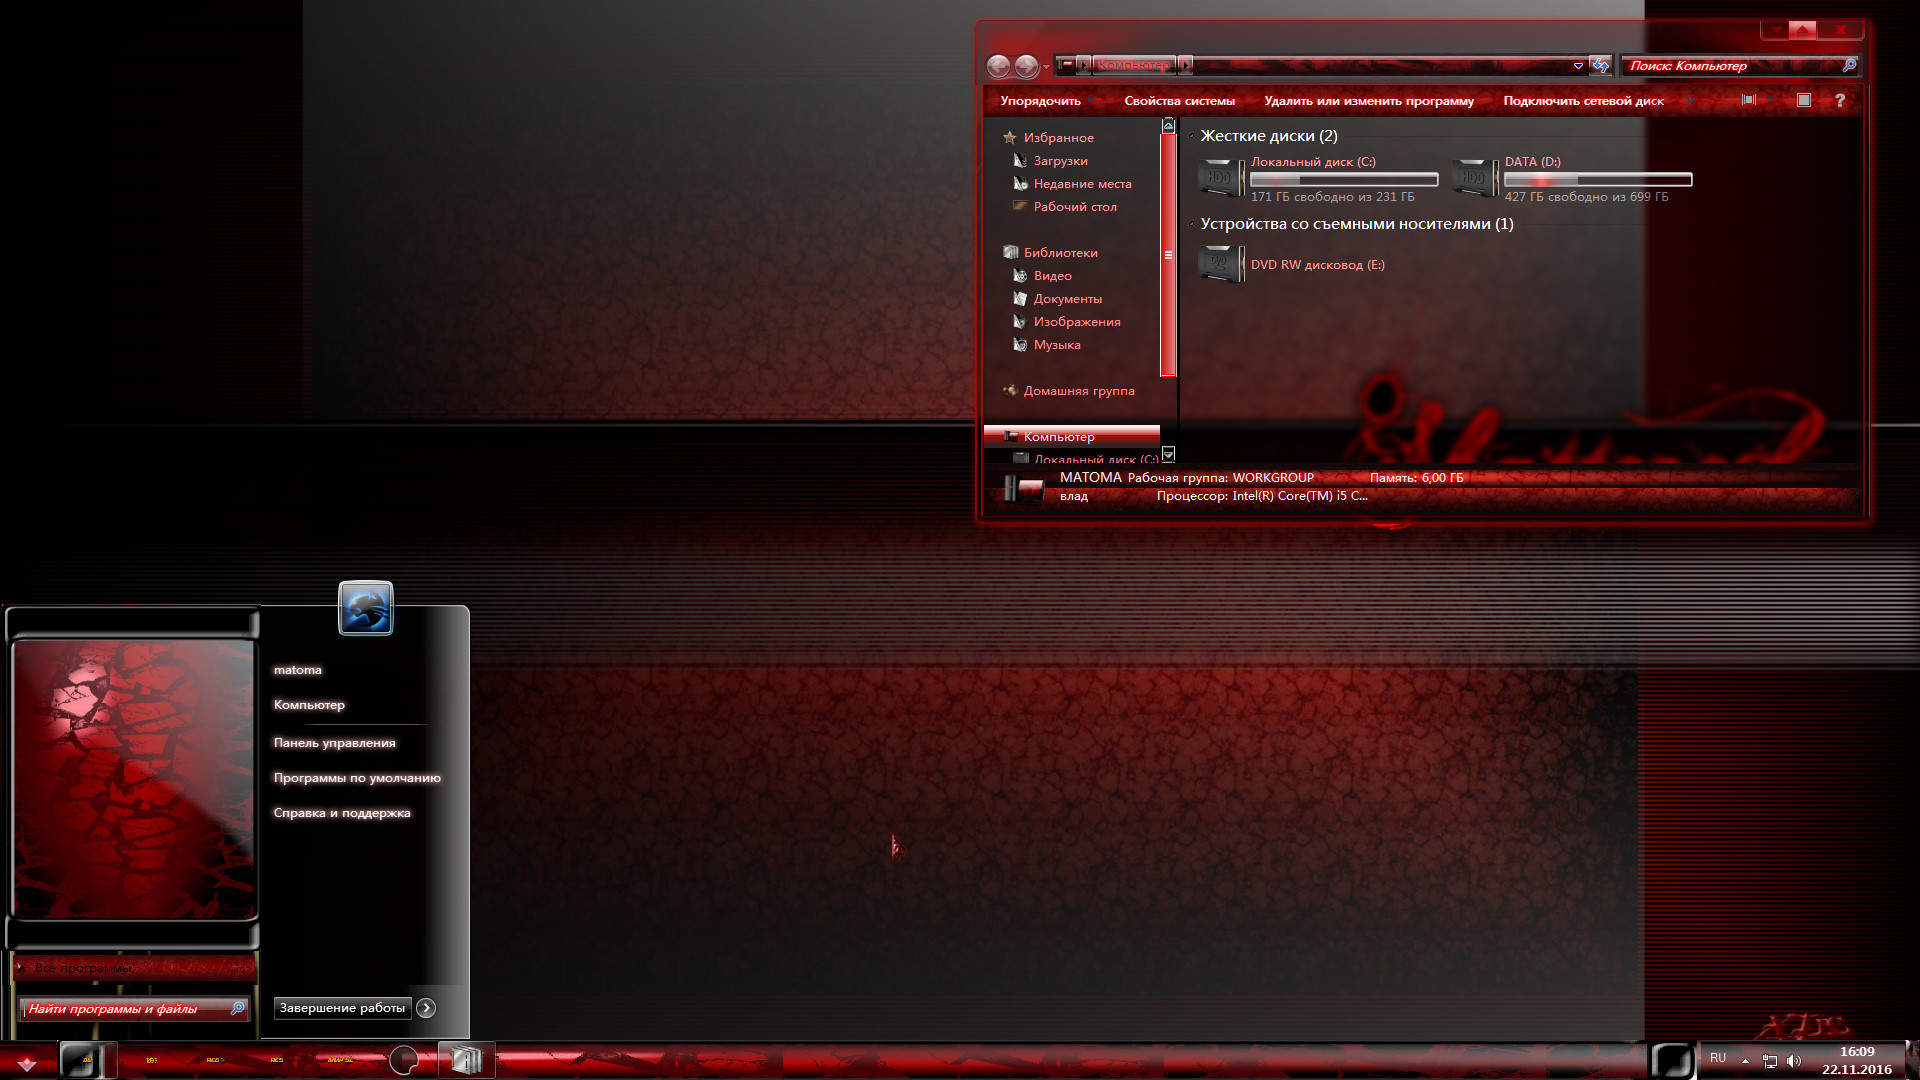 Shatter red 7 v2 theme by X - ile2010